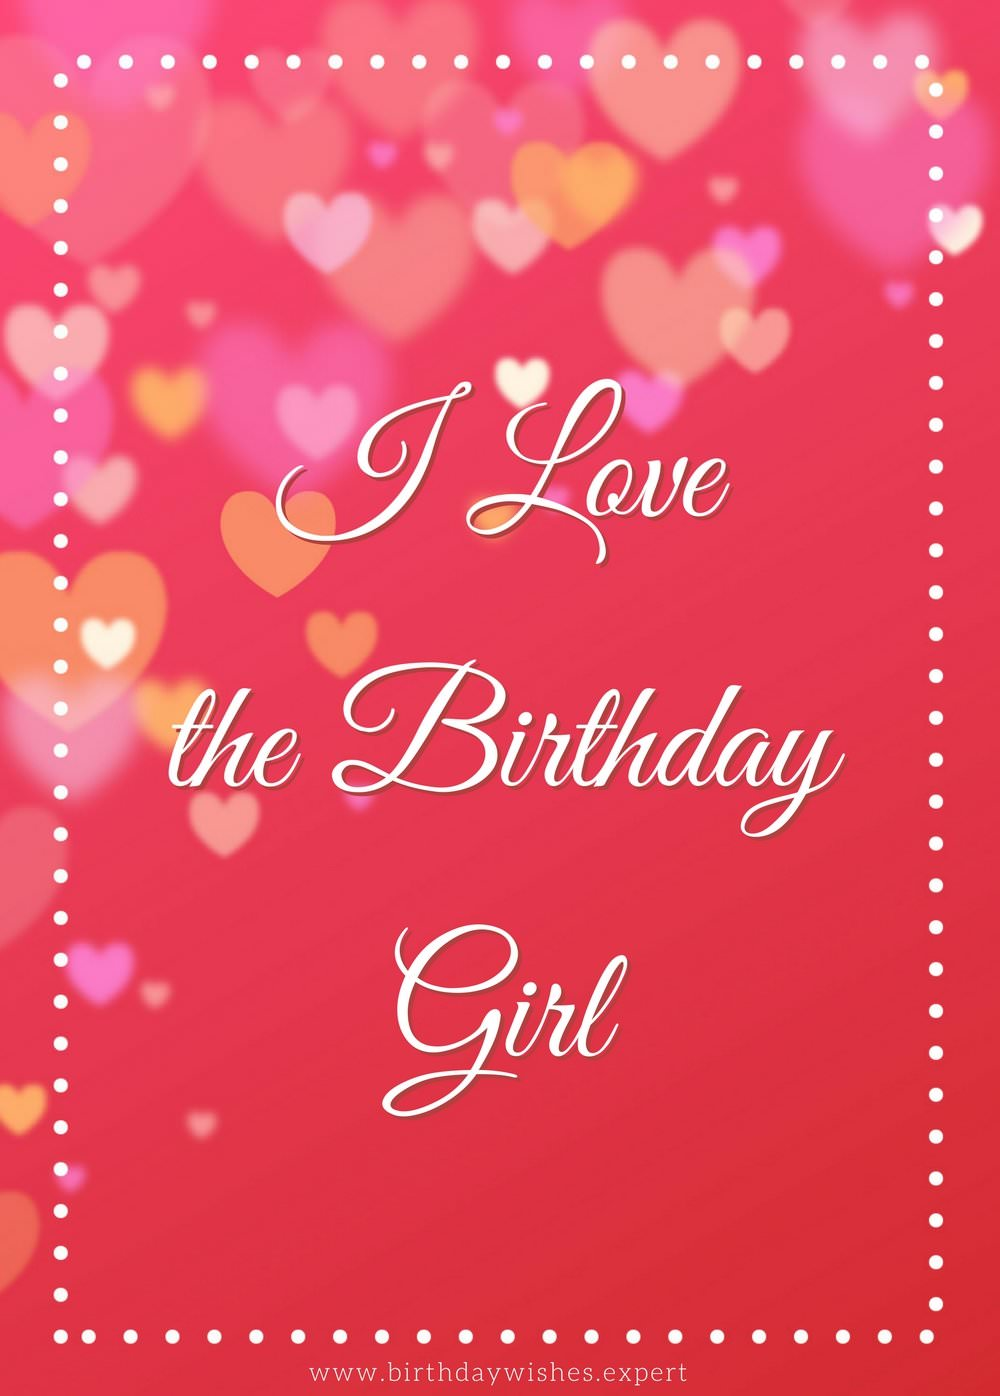 Love Only | Romantic Birthday Wishes for your Girlfriend